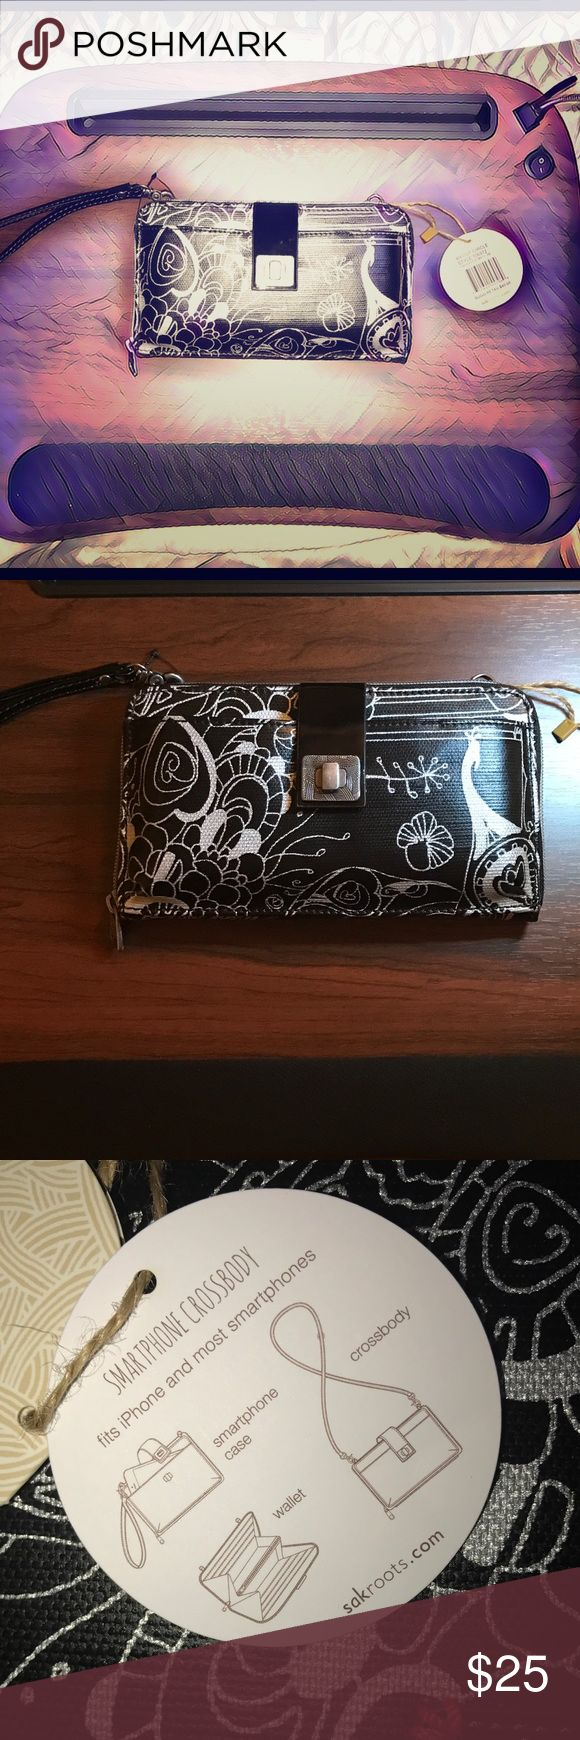 Sakroots crossbody wallet phone case multi-use NWT NWT Sakroots Brand crossbody/wristlet/wallet/cell phone cover - holds up to iPhone 7Plus in front pocket with buckle NWT Sakroots Bags Crossbody Bags